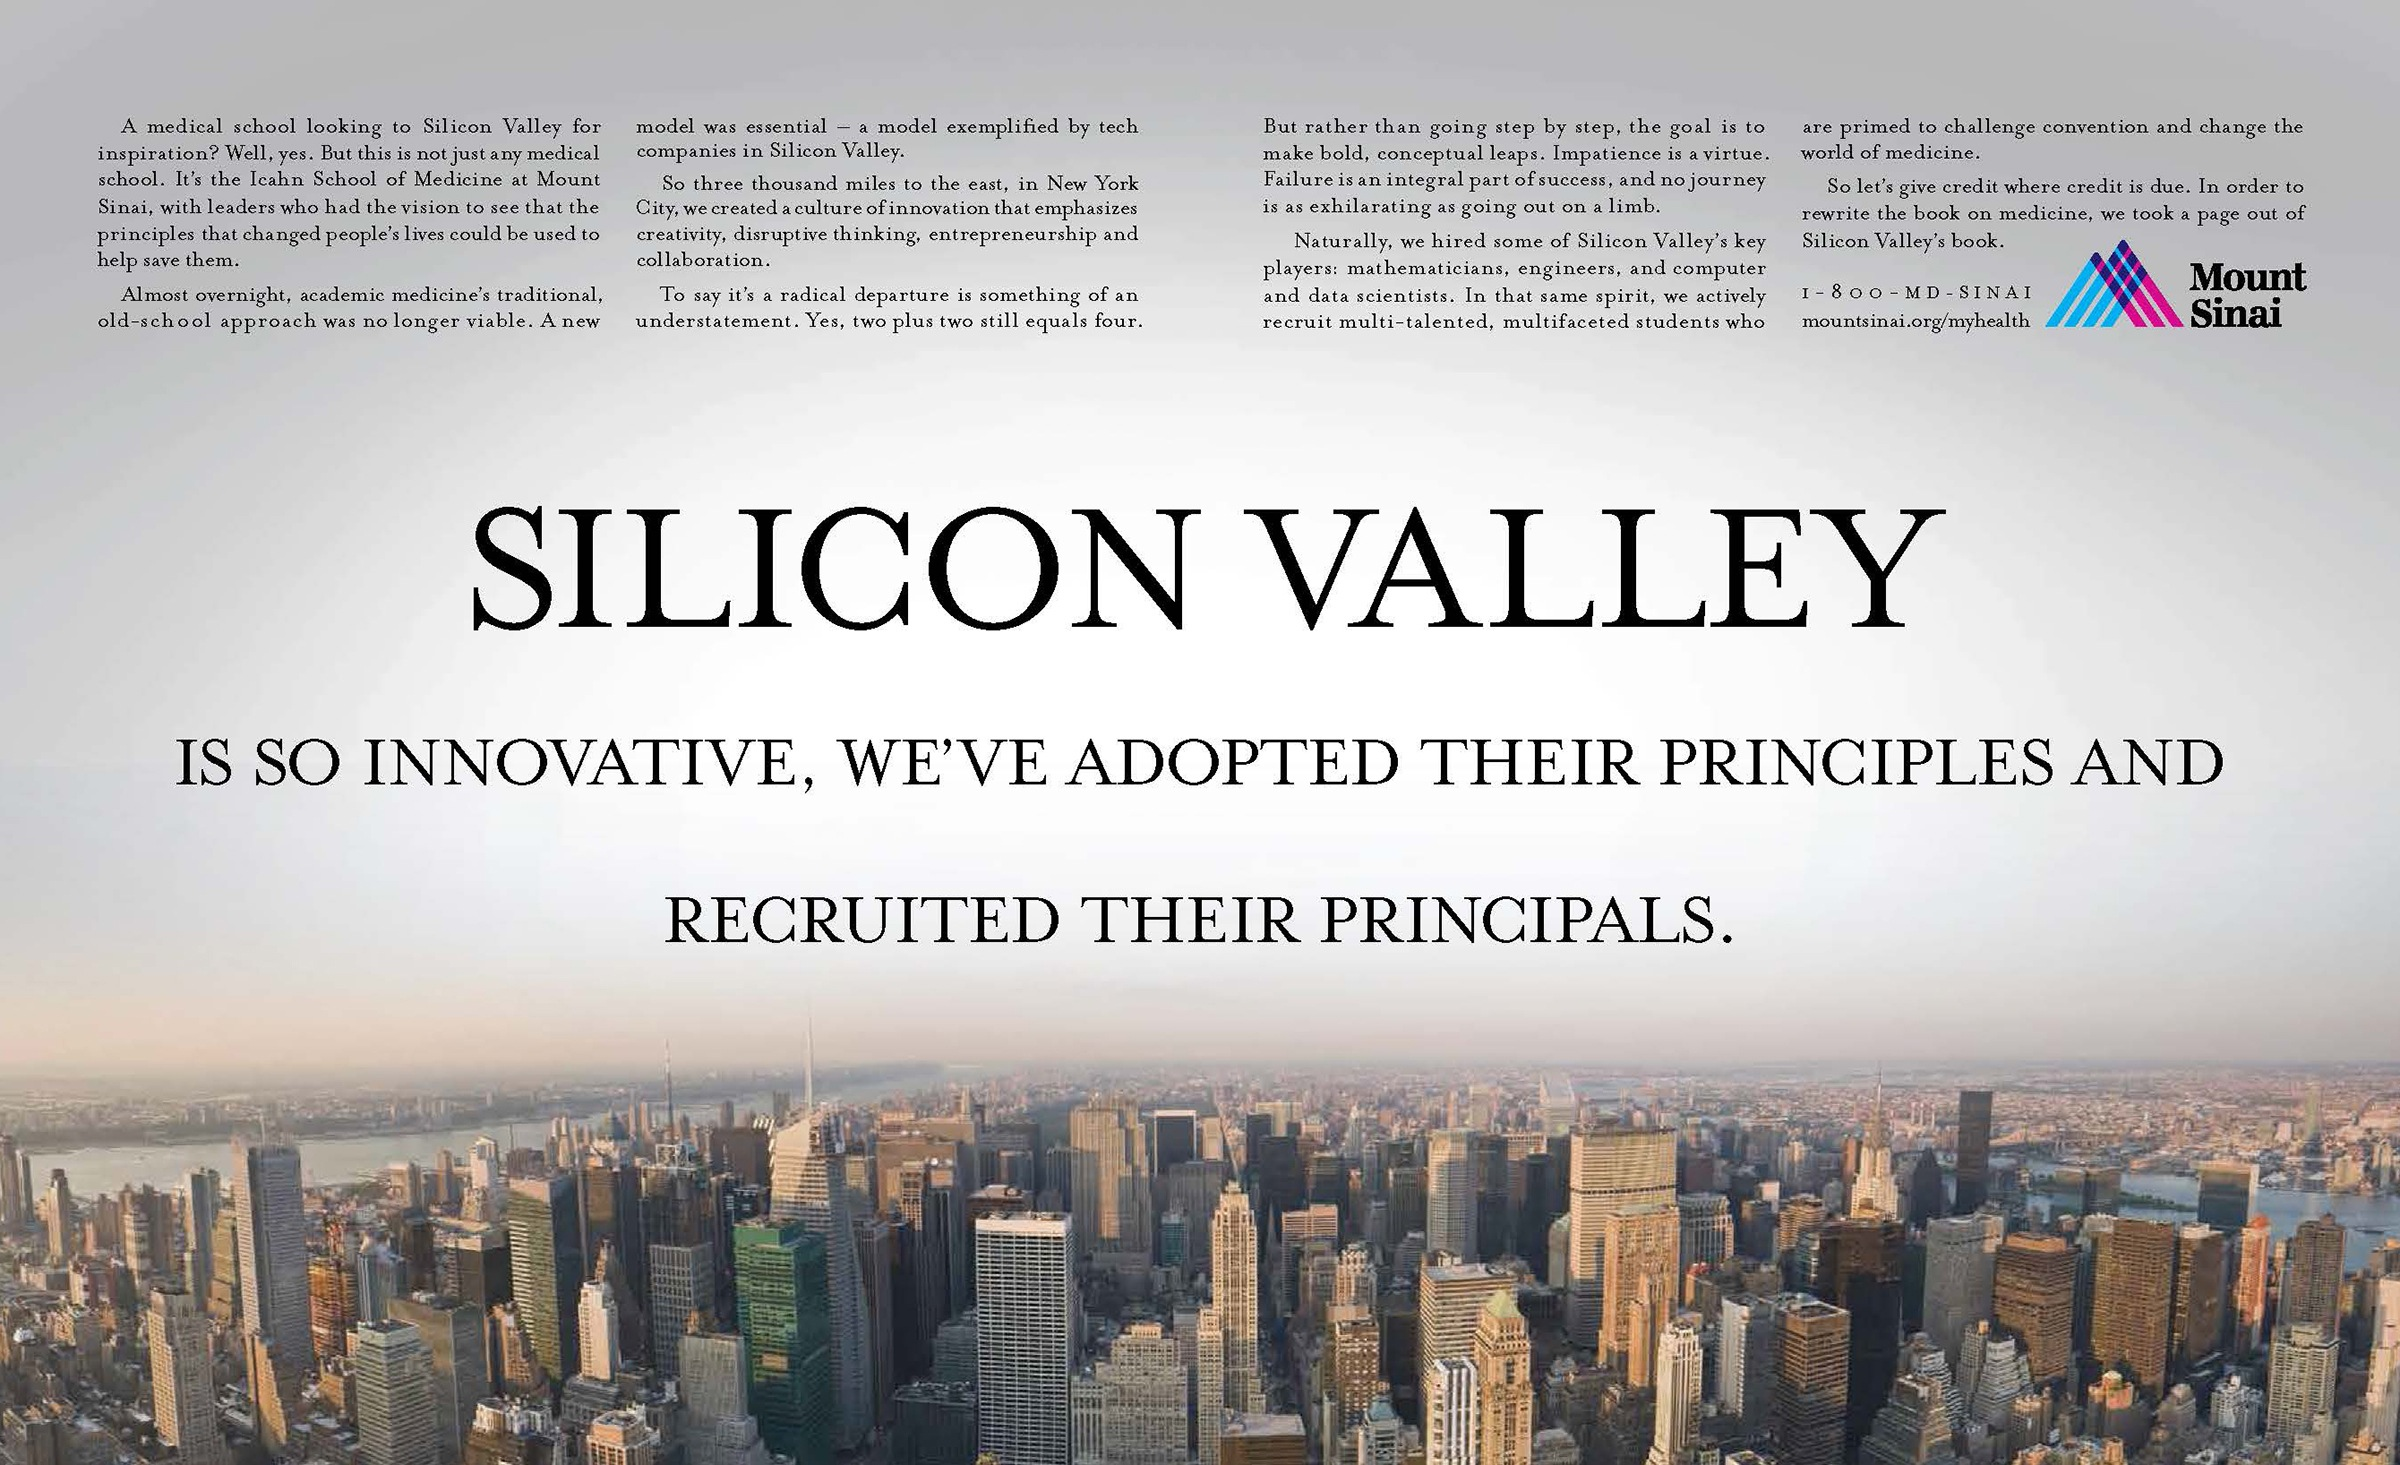 What Degrees Do Silicon Valley Tech Companies Prefer to Hire?